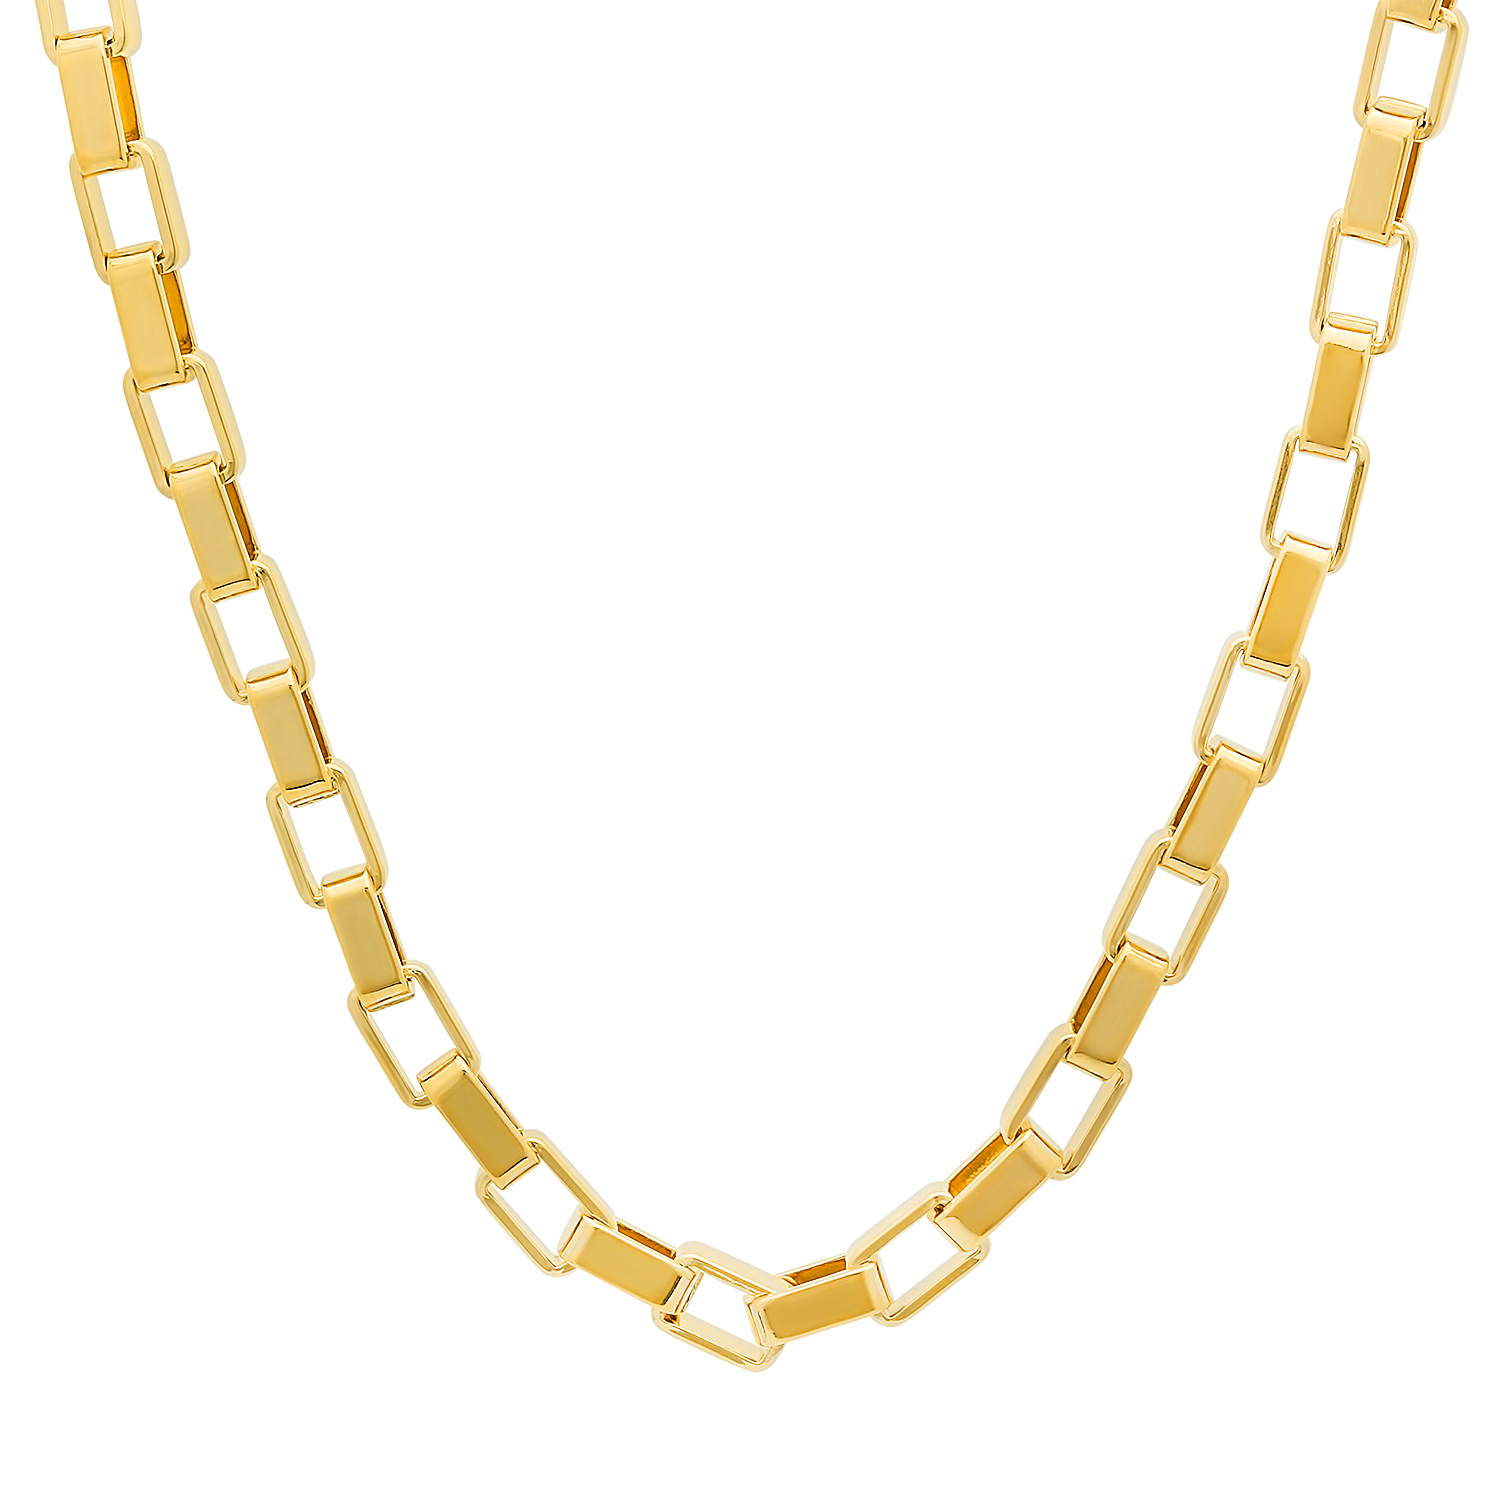 5mm 14k Gold Plated Box Chain | eBay